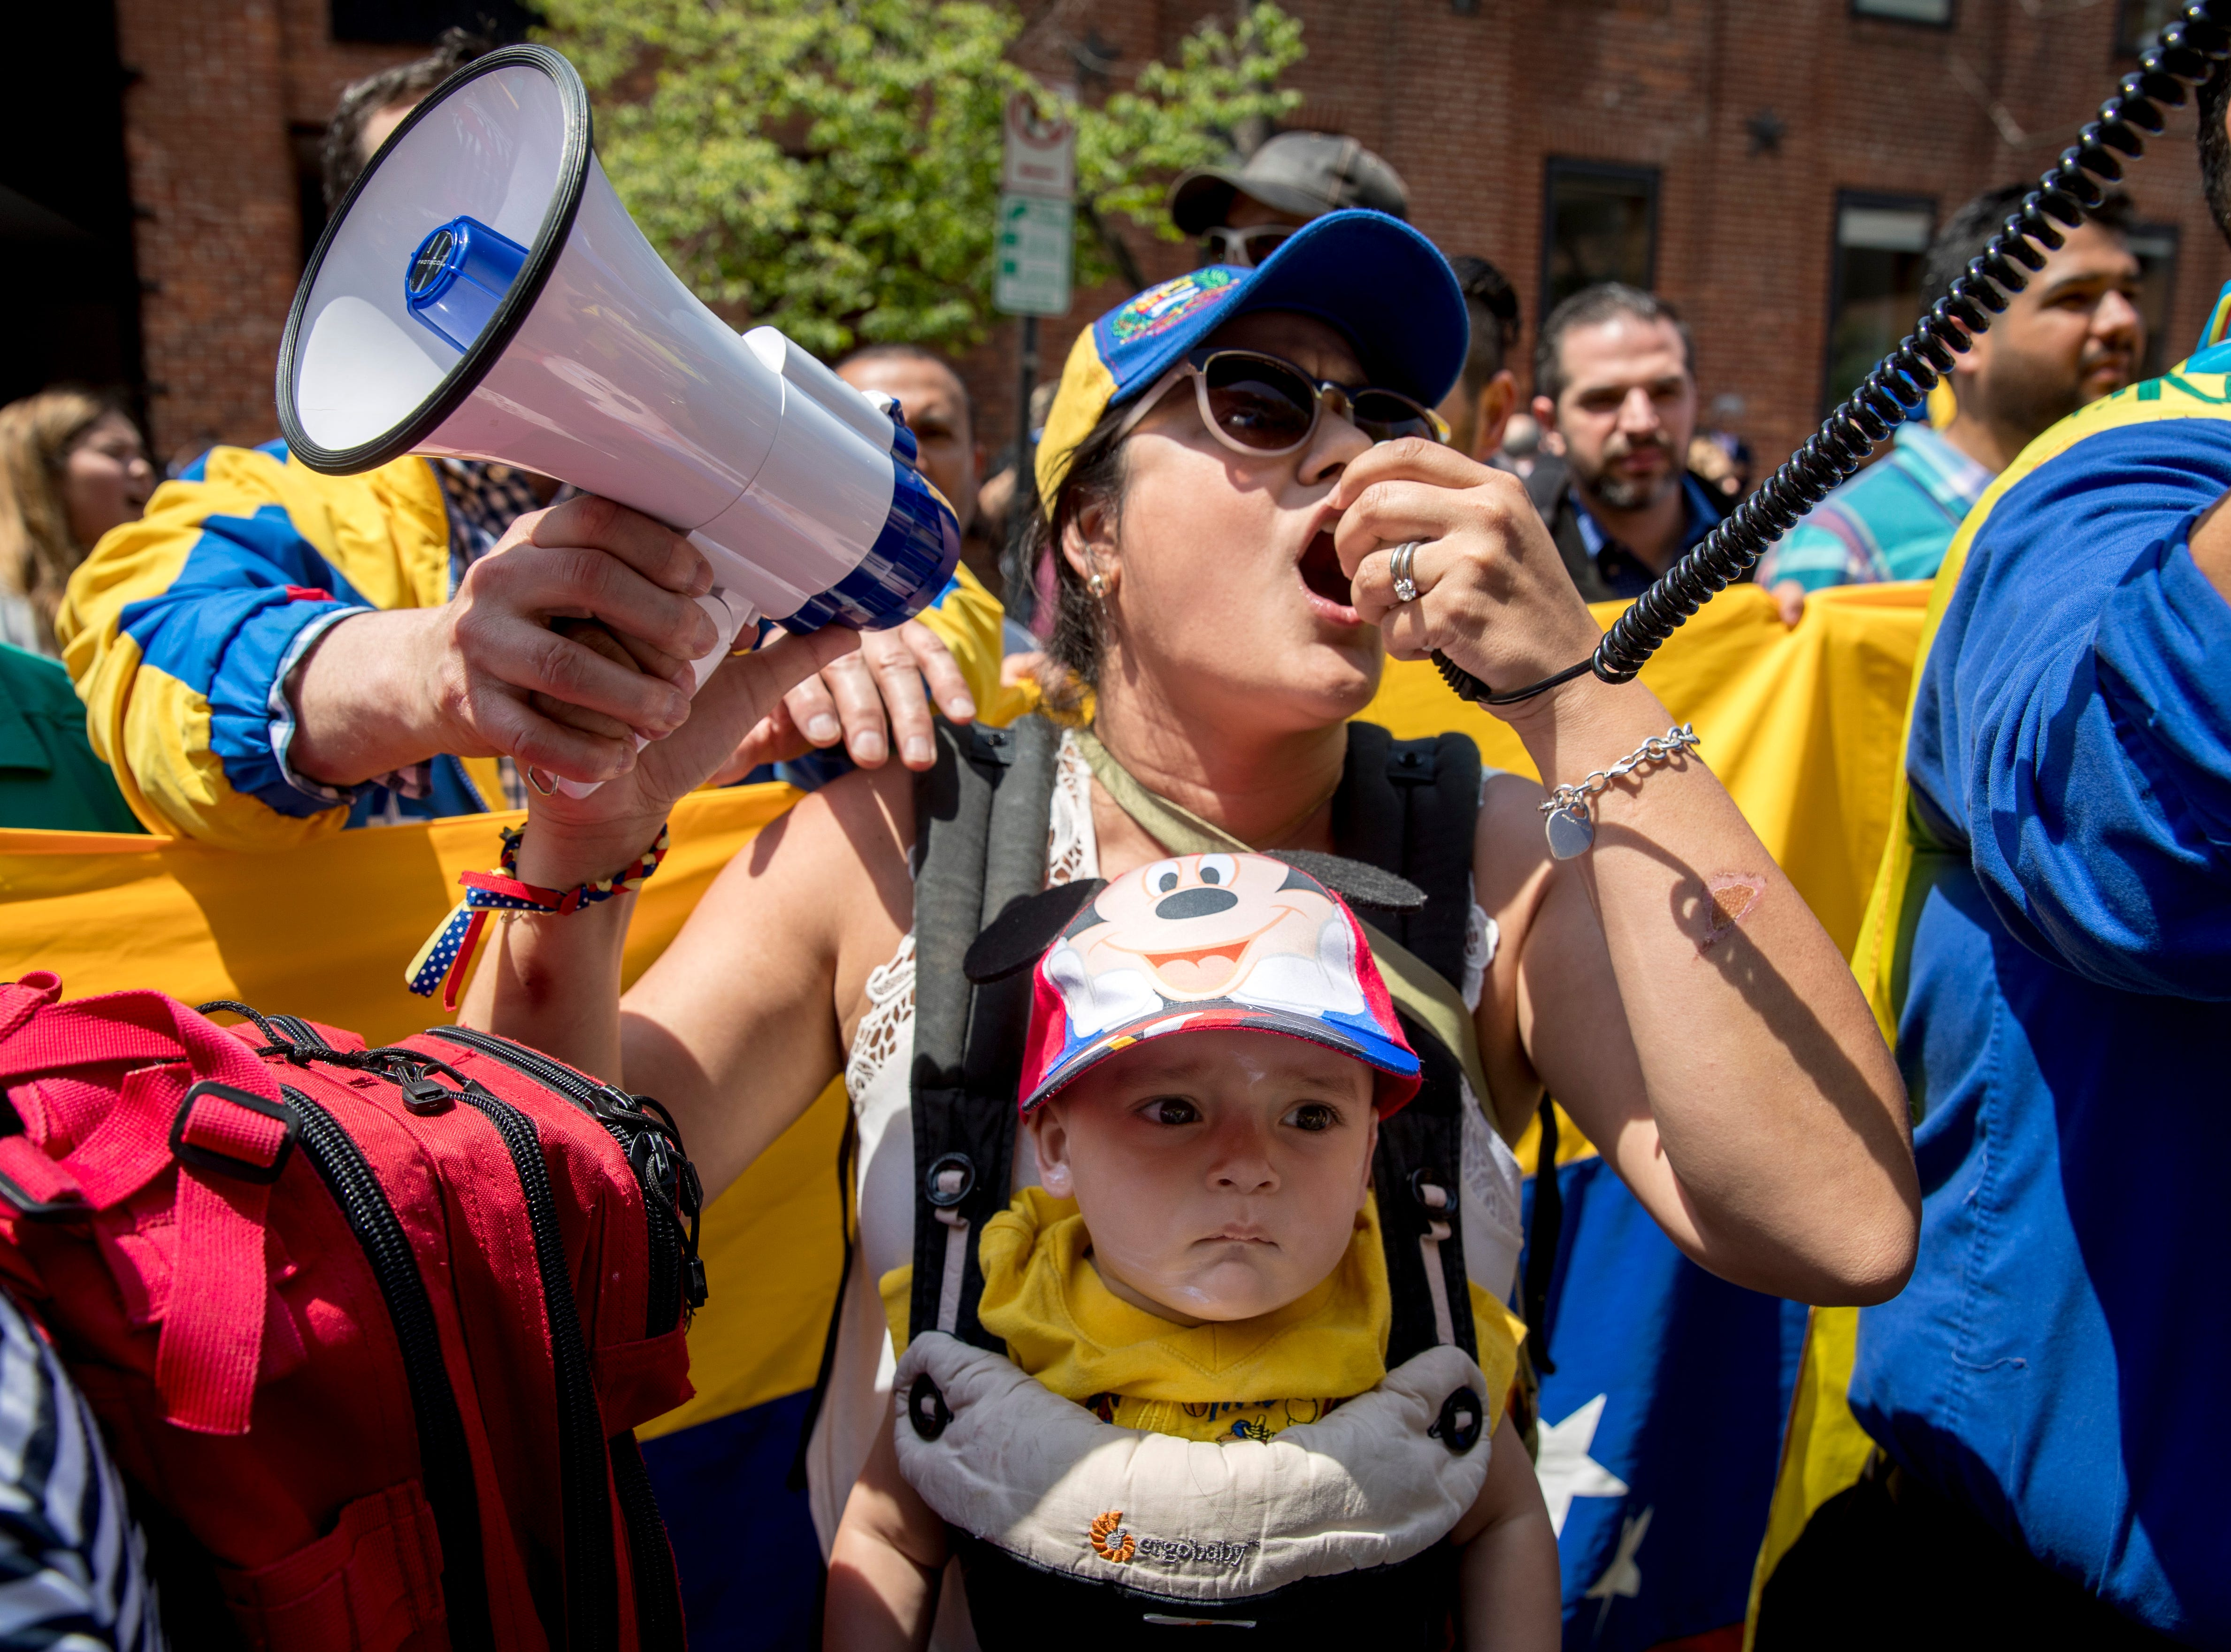 Carla Bustillos of Alexandria, Va., carries her son Carlos as she speaks on bullhorns with other supporters of pro interim government opposition leader Juan Guaido during a rally outside of the Venezuelan Embassy in Washington, Tuesday, April 30, 2019, on the current situation in Venezuela.